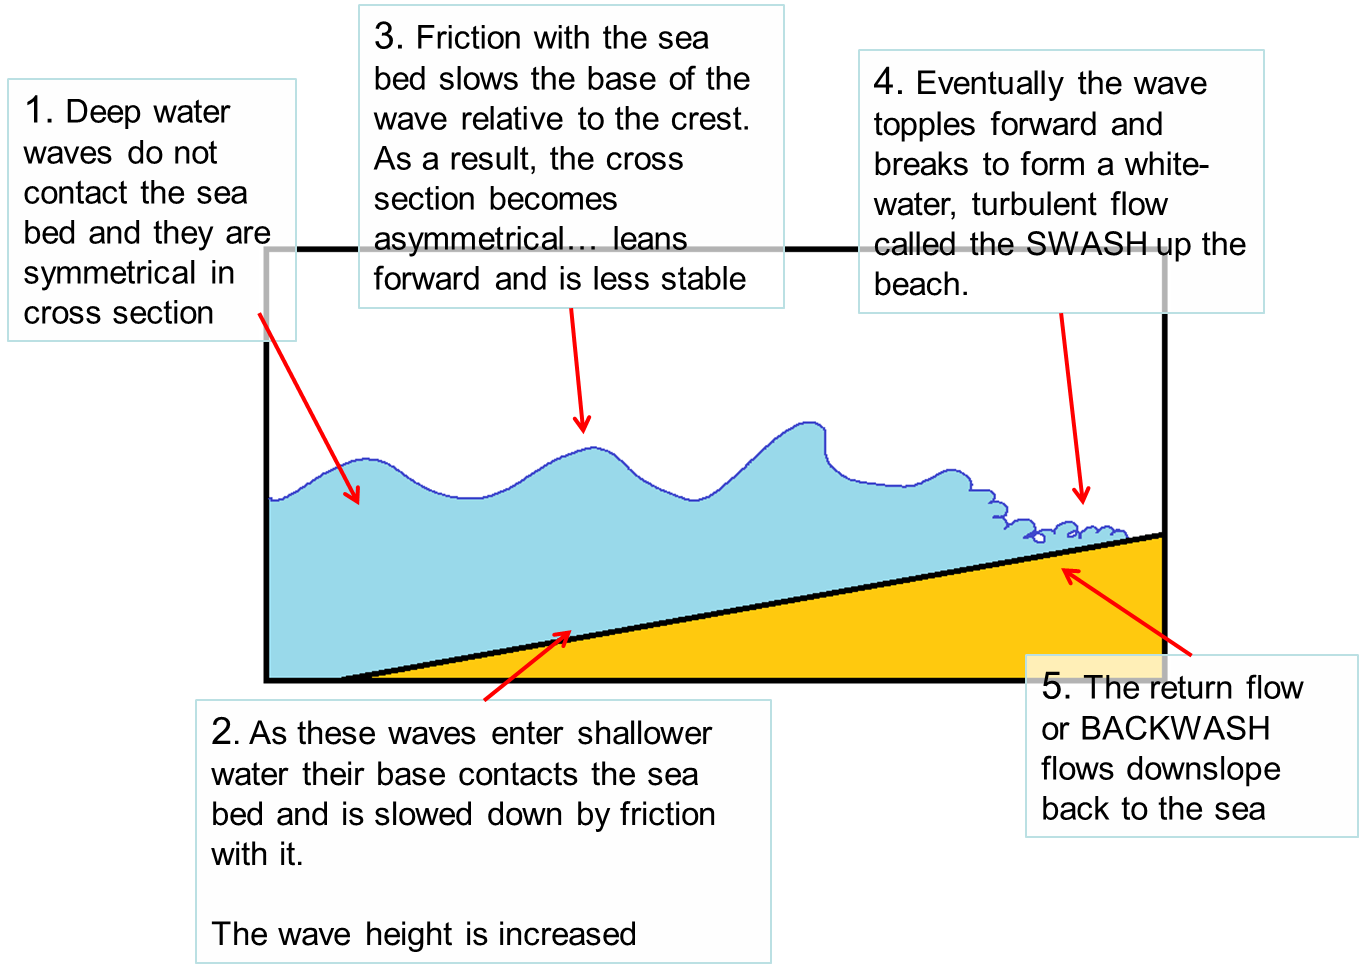 Make Sure That You Are Able To Describe And Explain How Waves Change As They Move From Deep Shallow Water Activities Ref Page 145 6 Of The Core Text